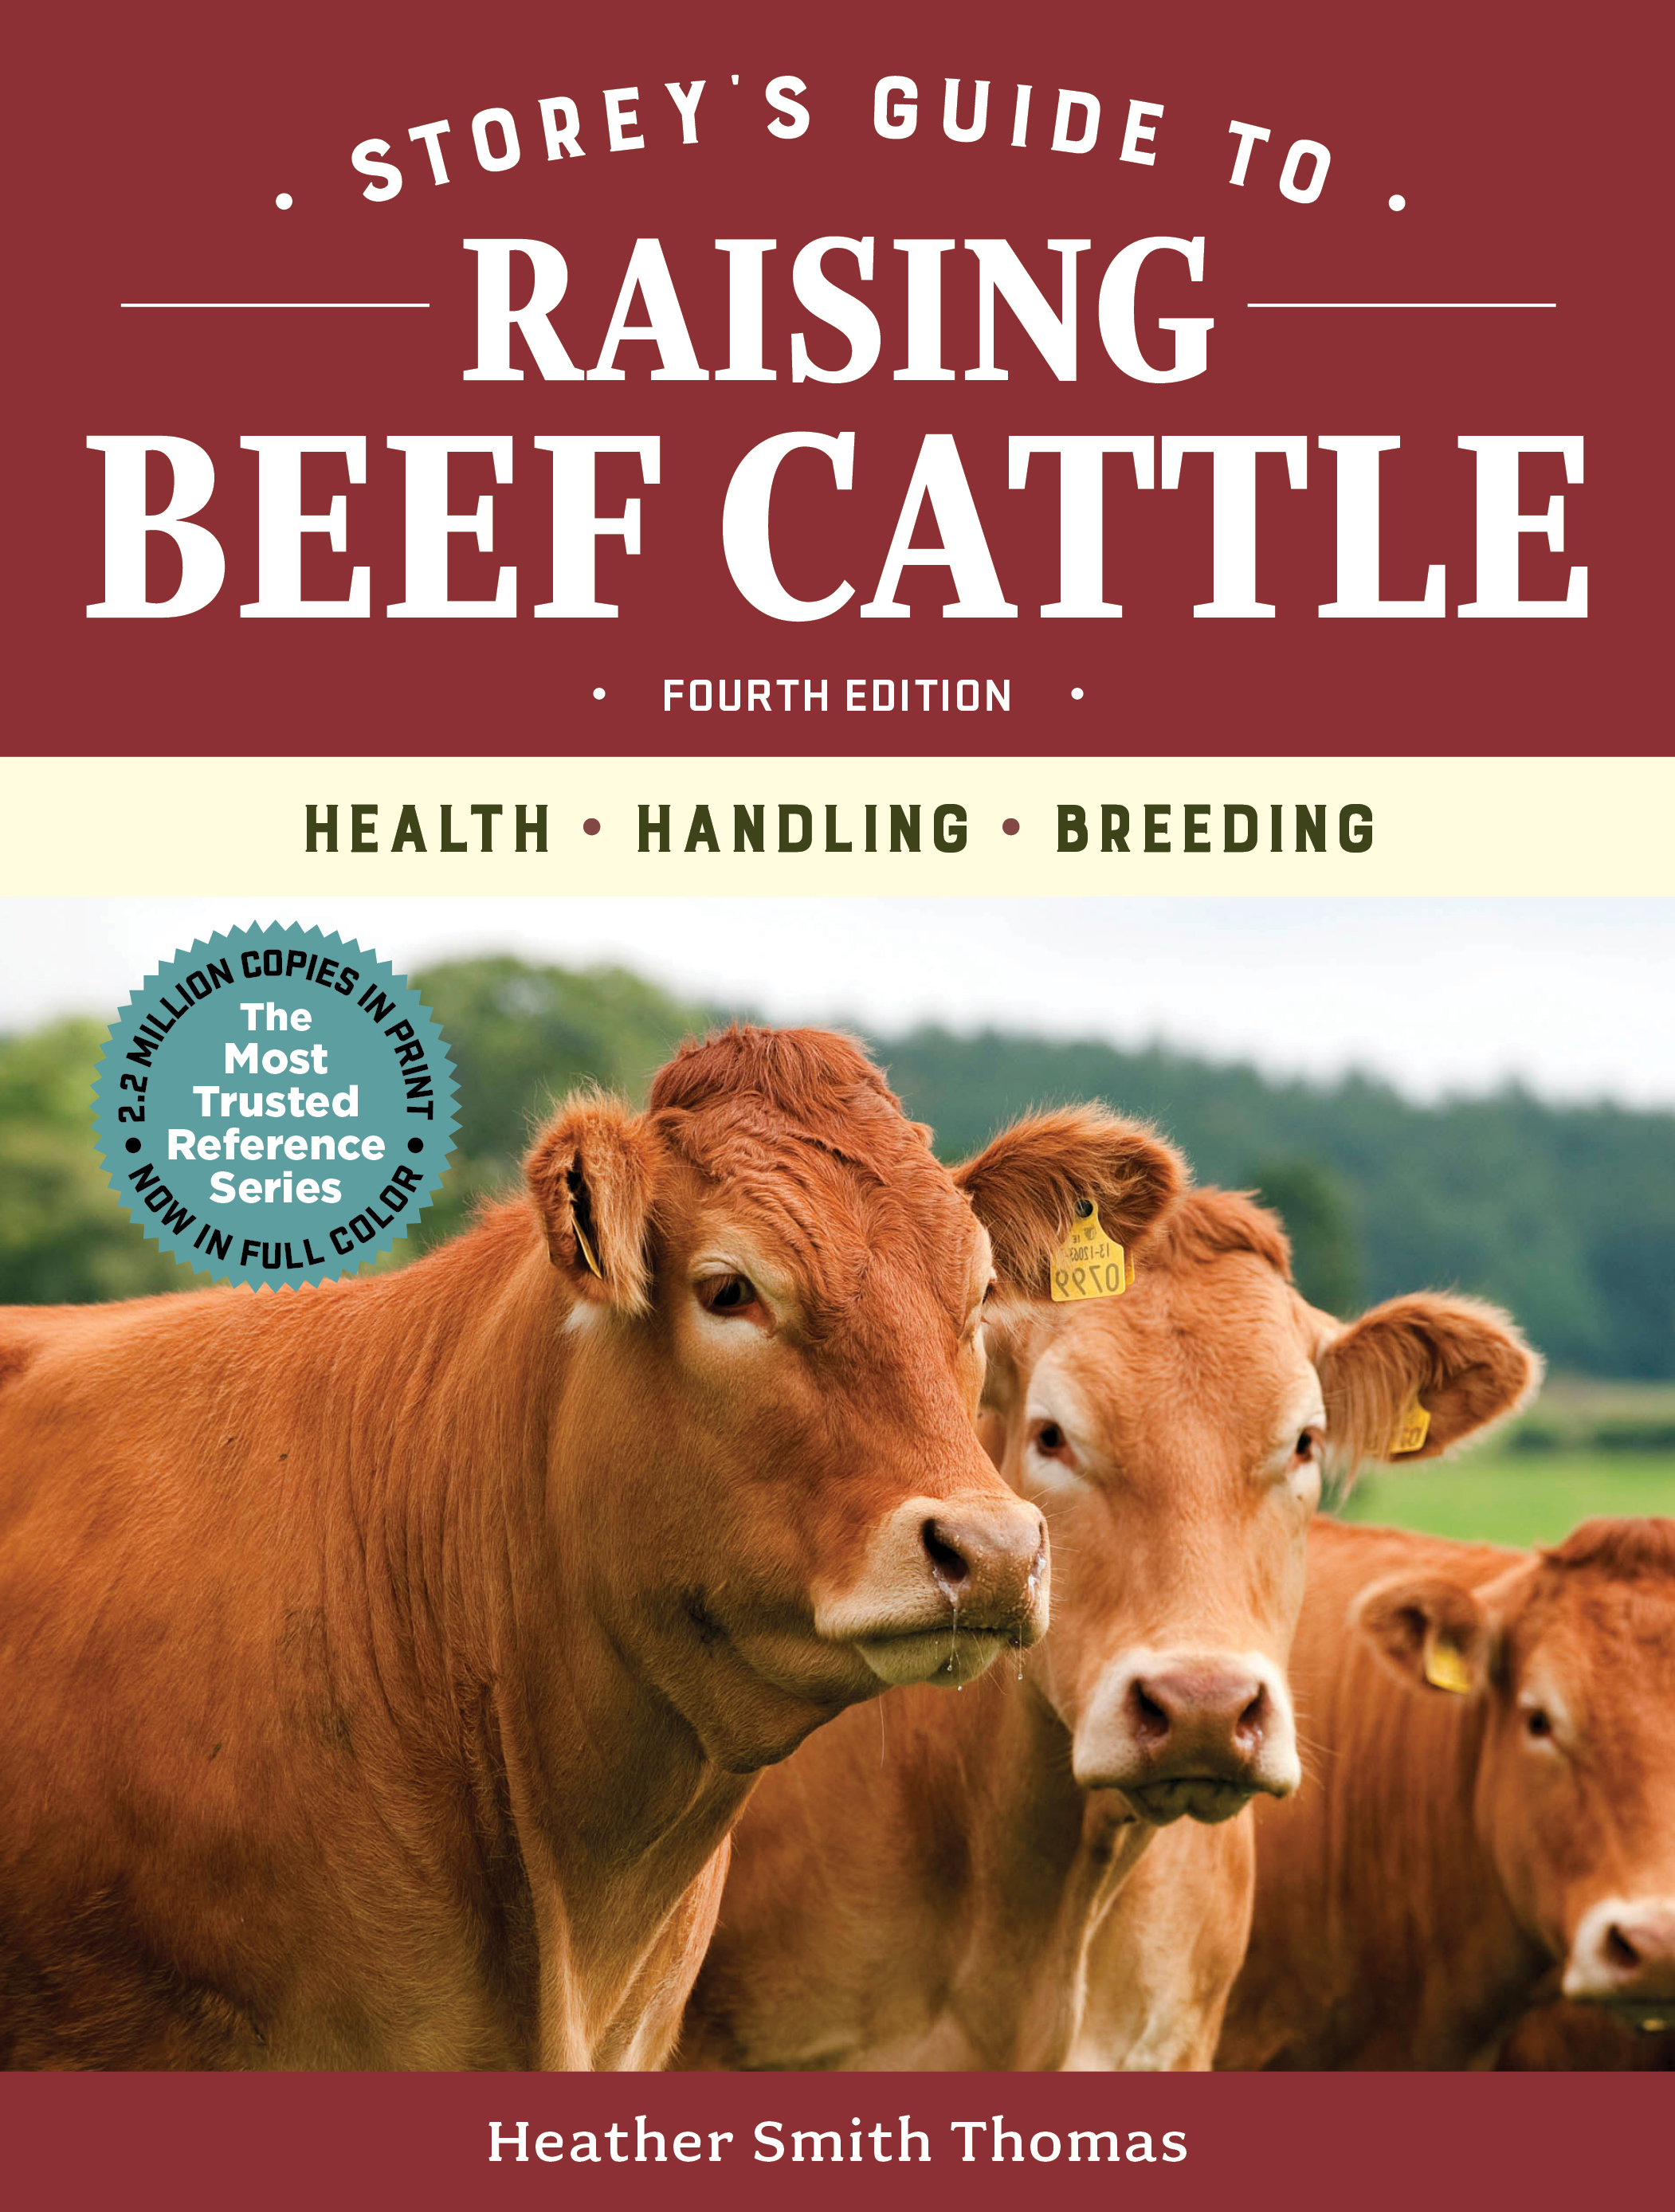 Storey's Guide to Raising Beef Cattle, 4th Edition Health, Handling, Breeding - Heather Smith Thomas